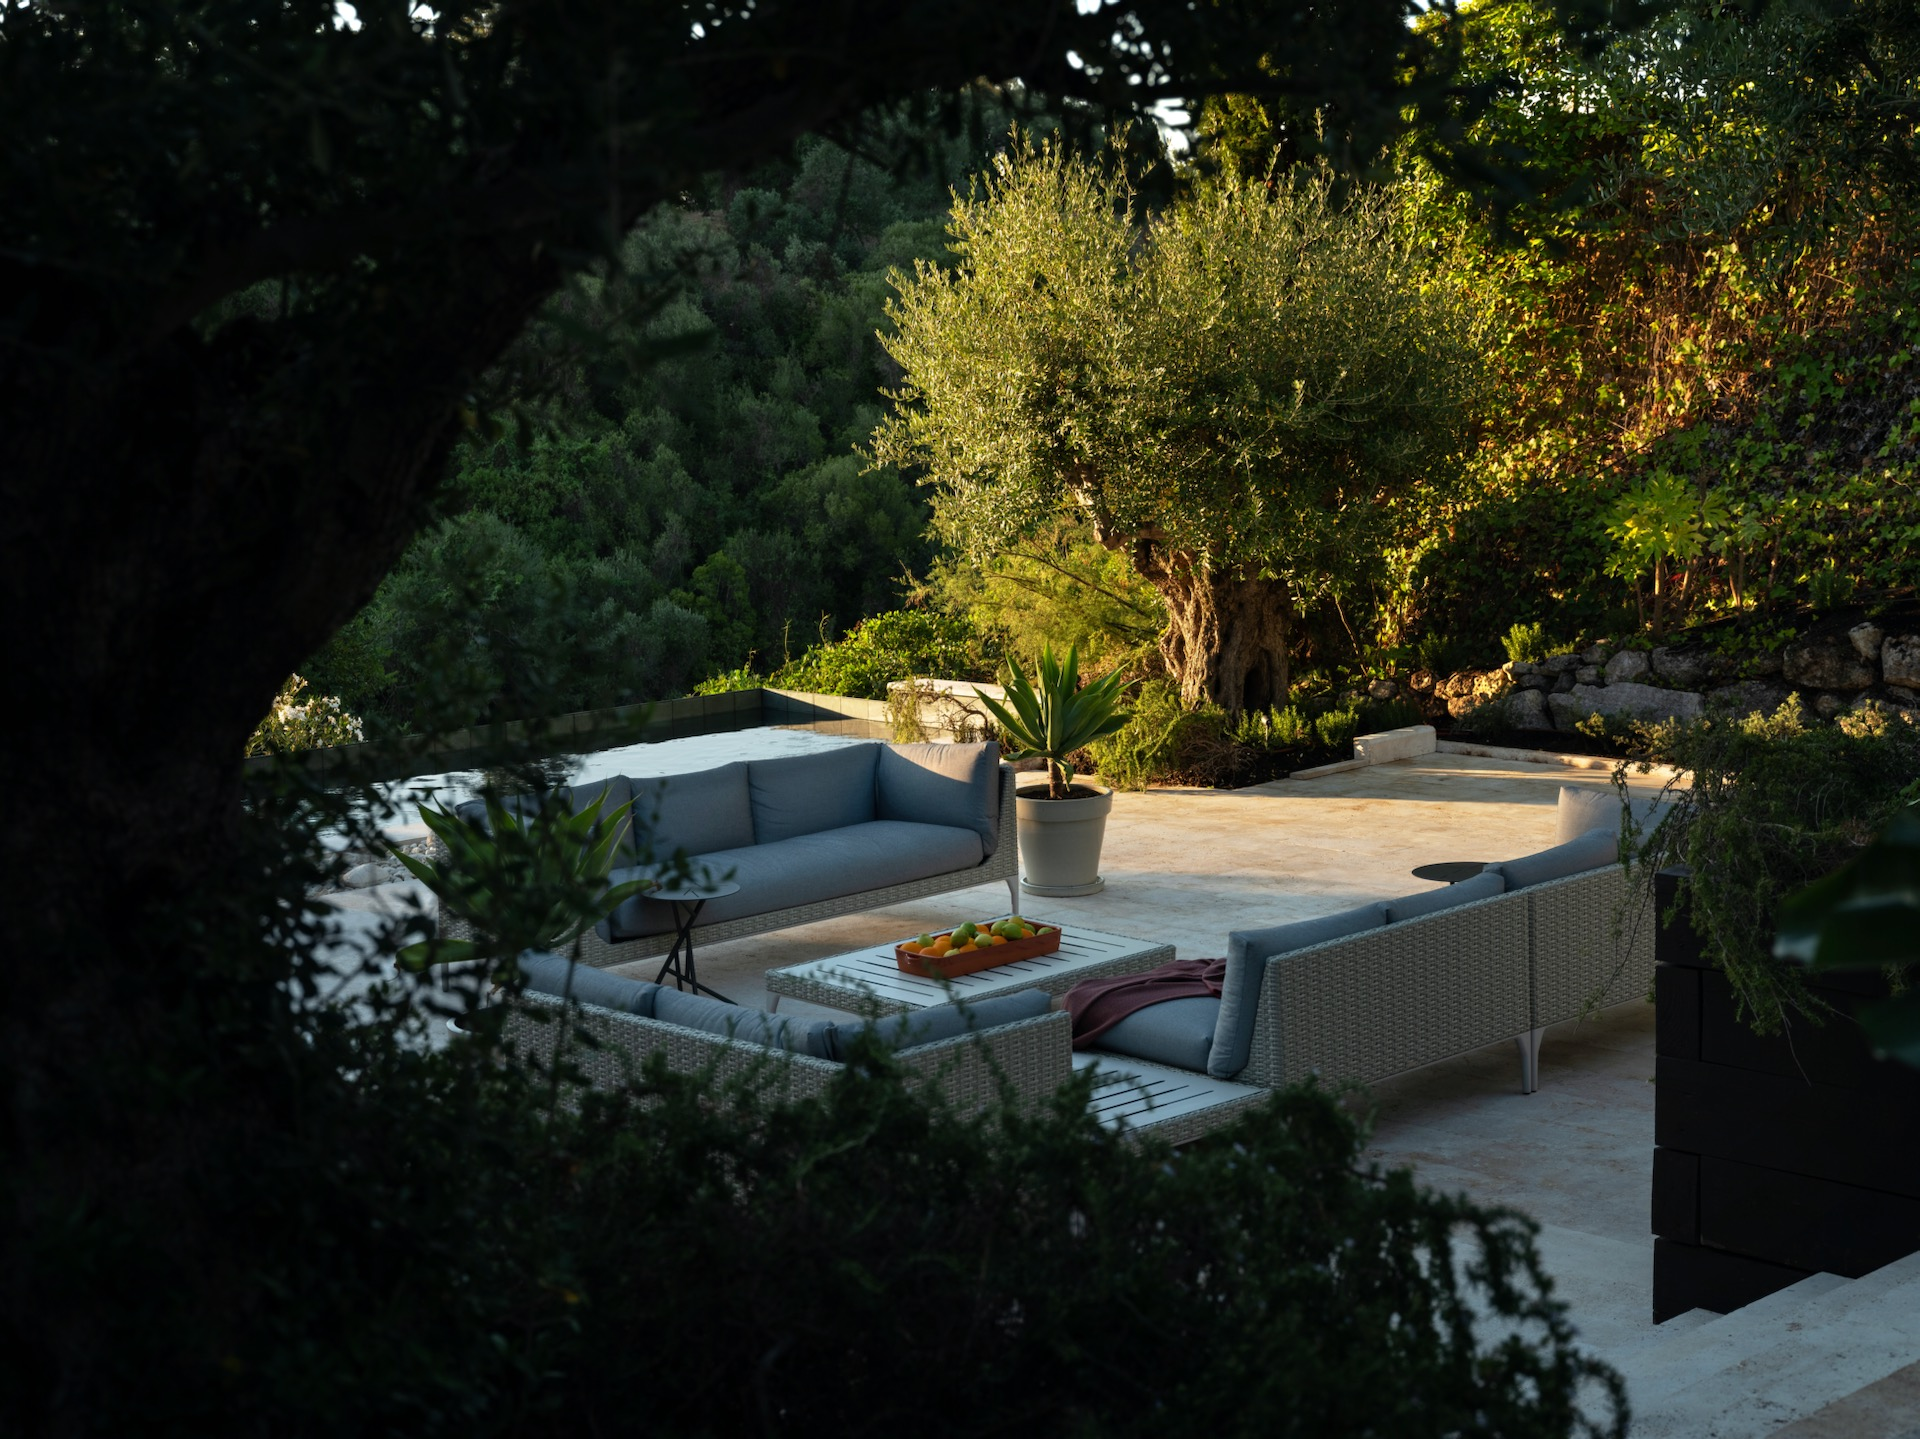 Space-Privacy-Outdoor living